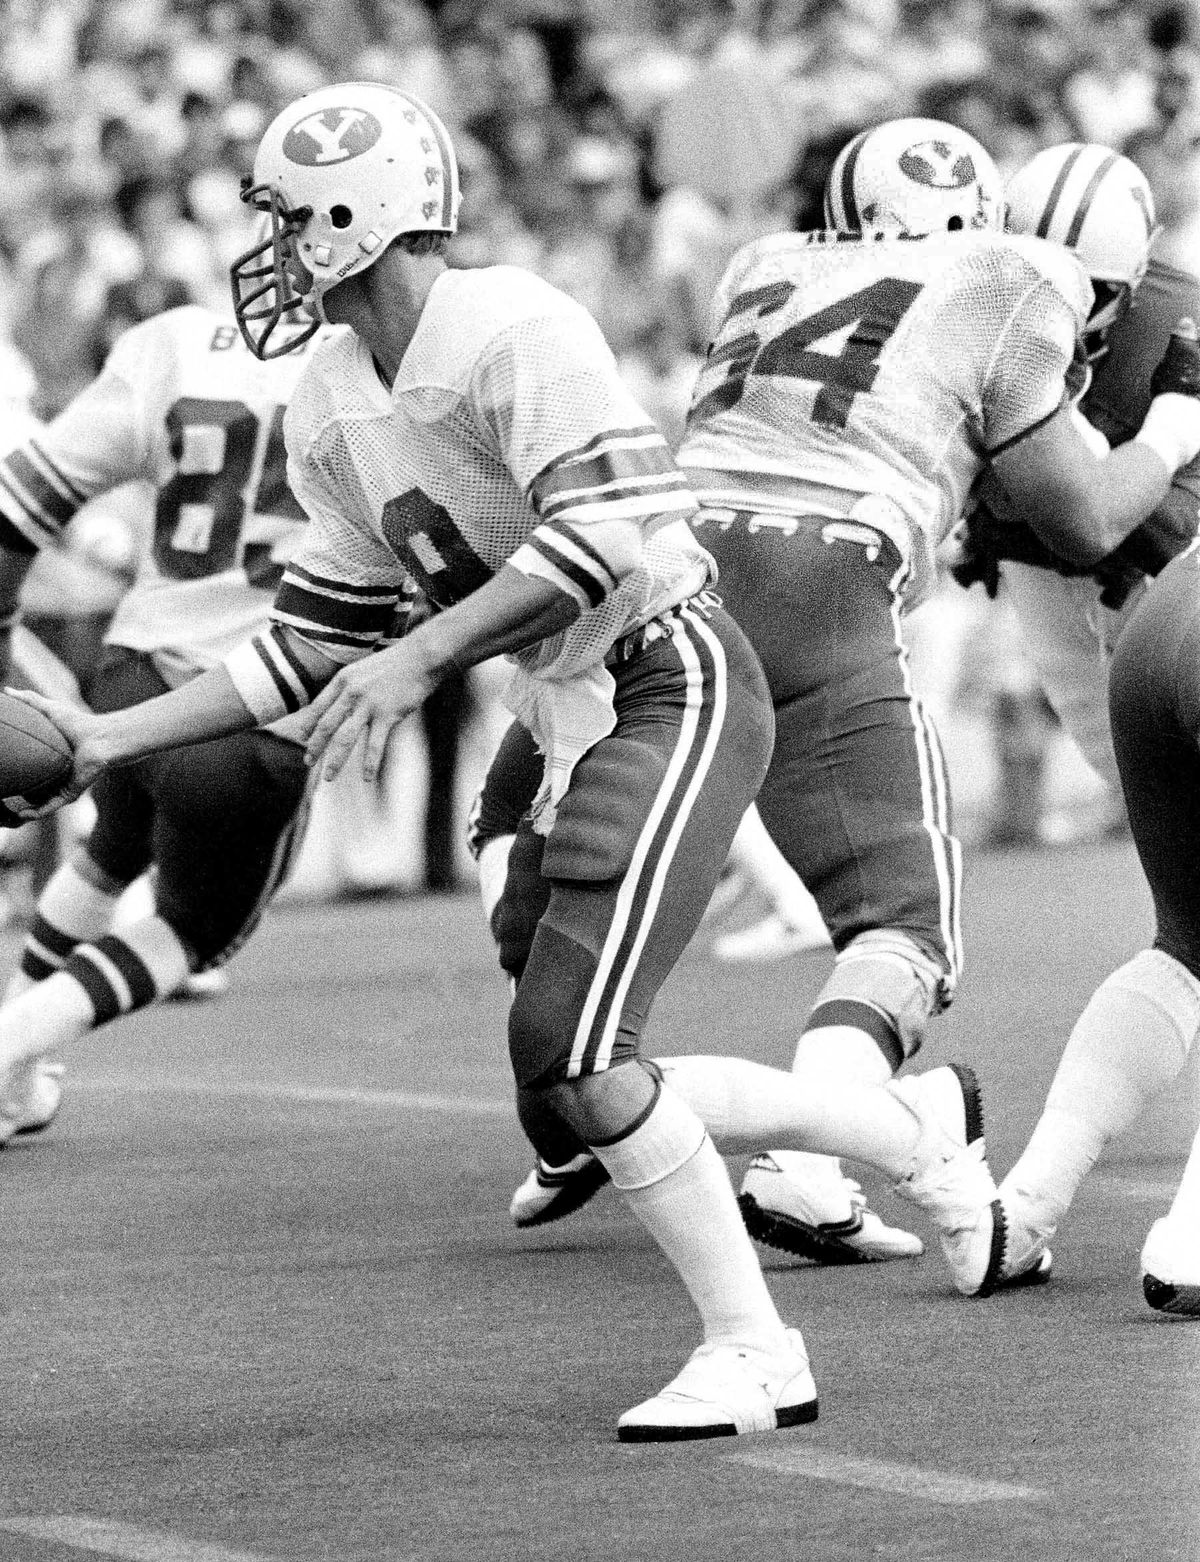 BYU offensive lineman Andy Reid, right, throws a block as quarterback Jim McMahon looks to hand off.